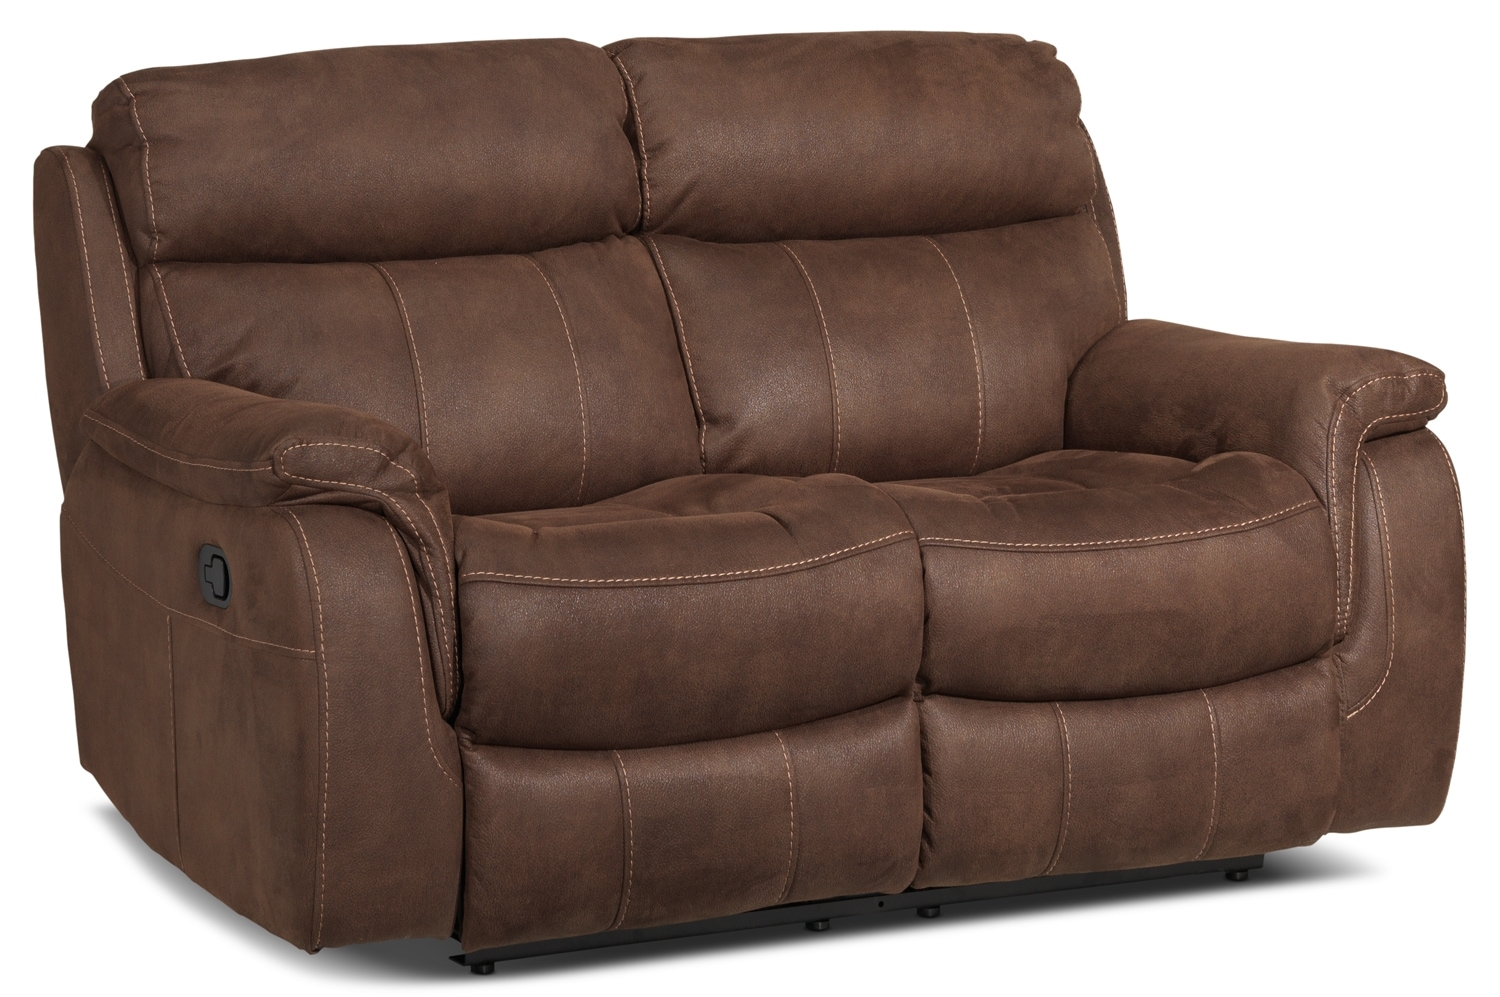 Morrow Reclining Loveseat - Saddle Brown